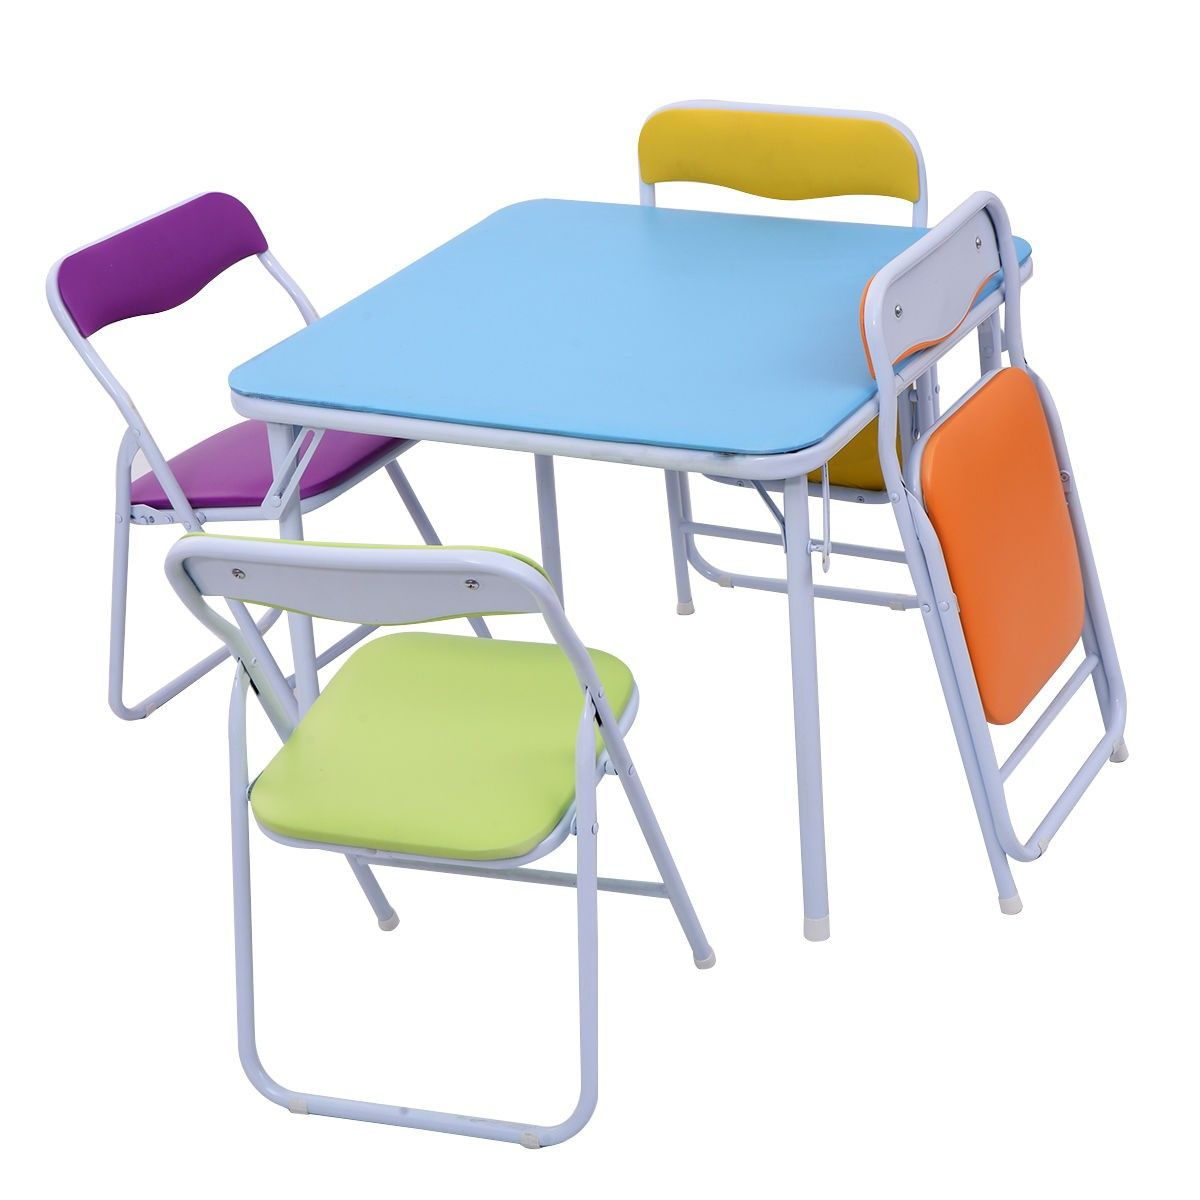 Toddler Chair And Table For Eating High Back Executive Set Of 5 Multicolor Kids Chairs Baby Furniture This Child Sized Folding Is A Perfect Center Toddlers To Enjoy Their Own Reading Creating Playing